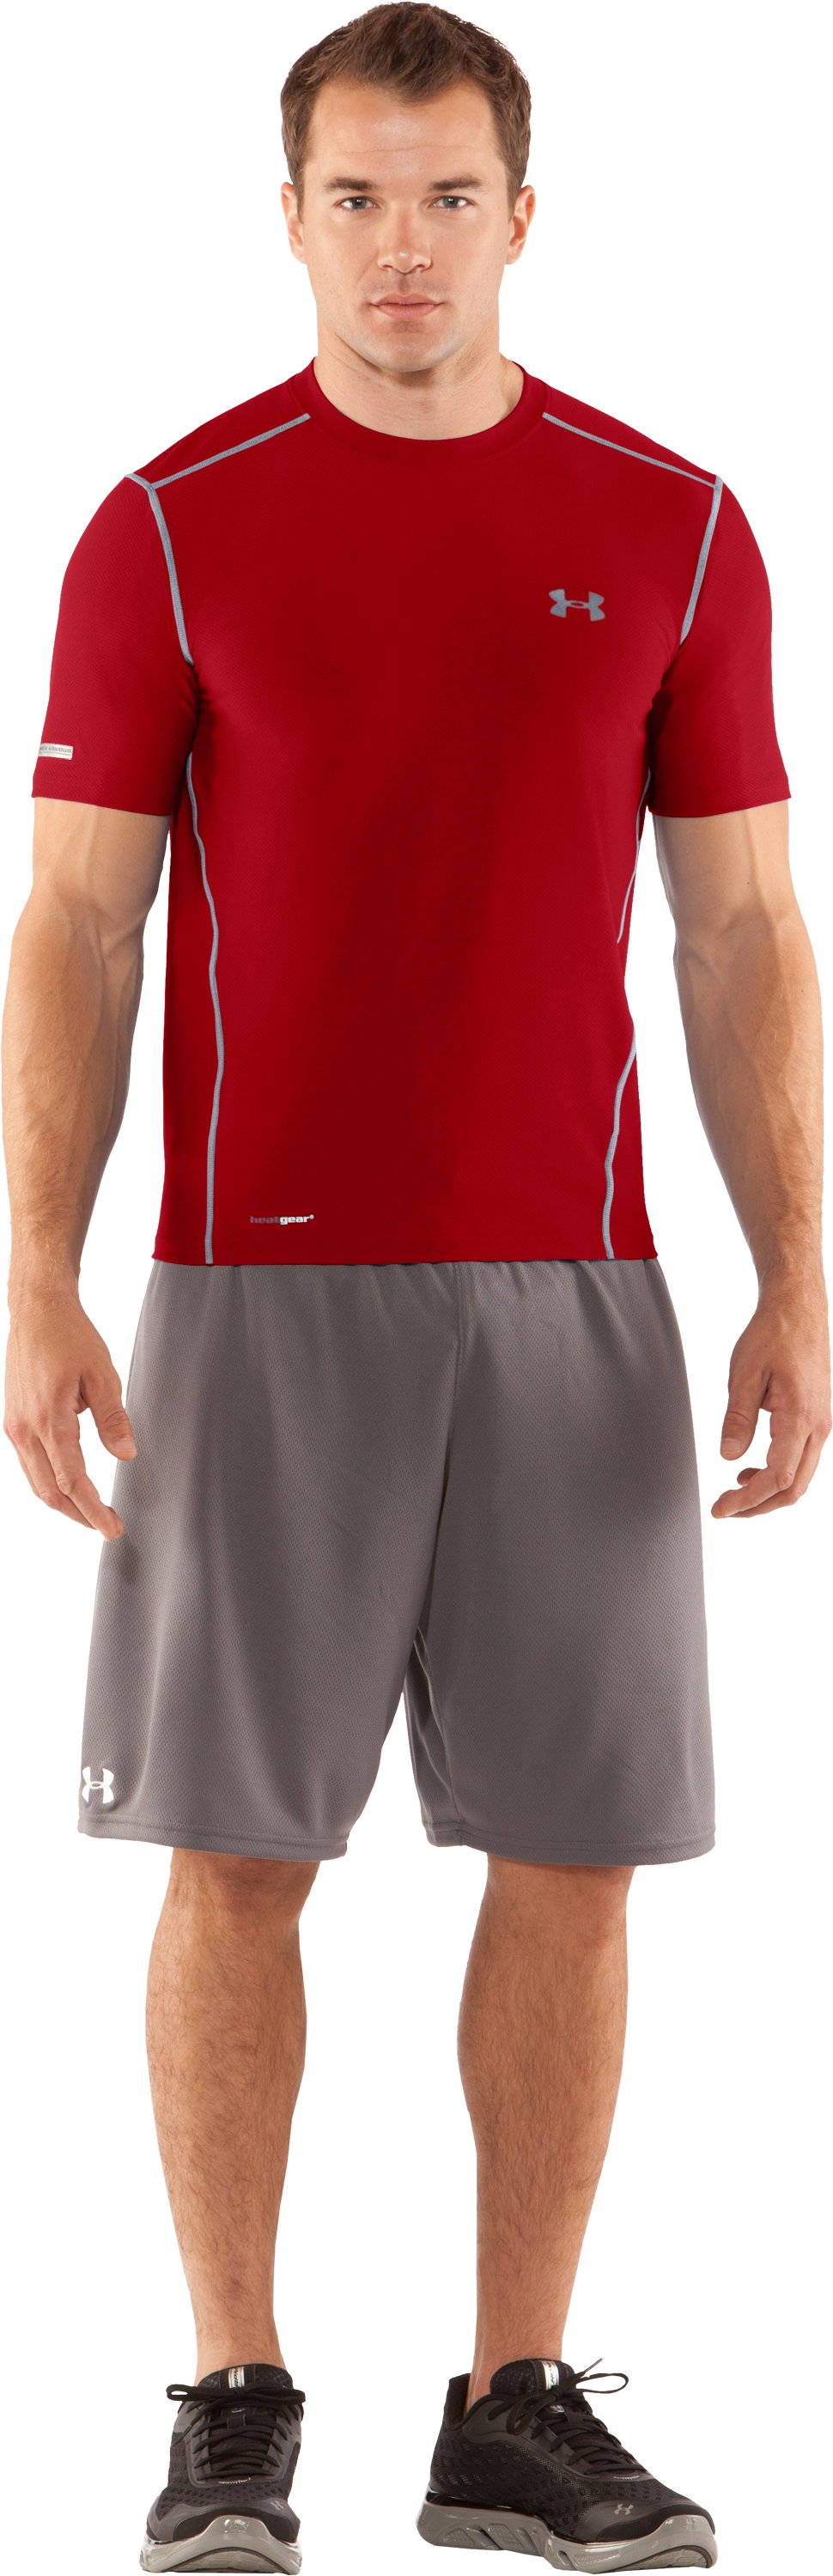 Men's HeatGear® Fitted Short Sleeve Crew, Red, Front